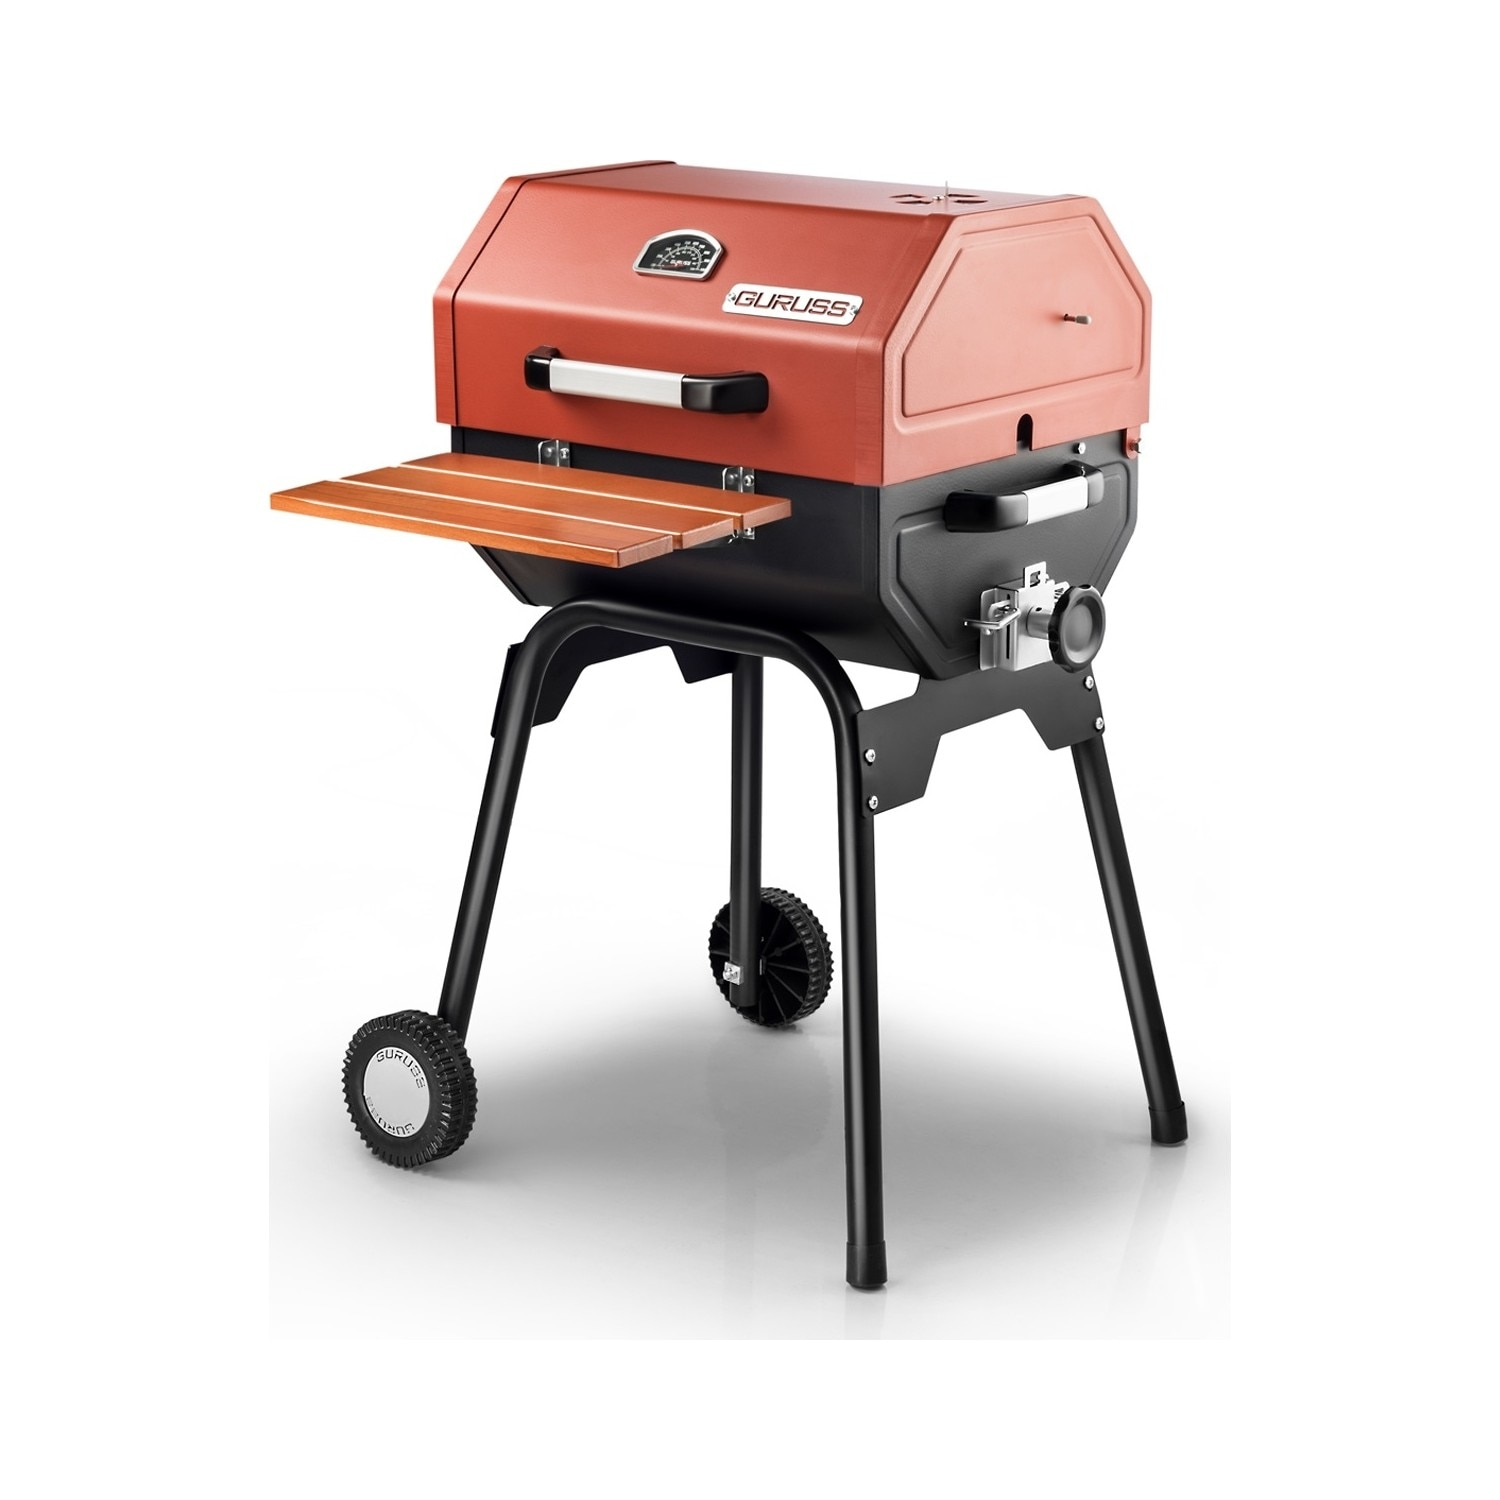 Guruss Charcoal Barbecue Grill 50 cm